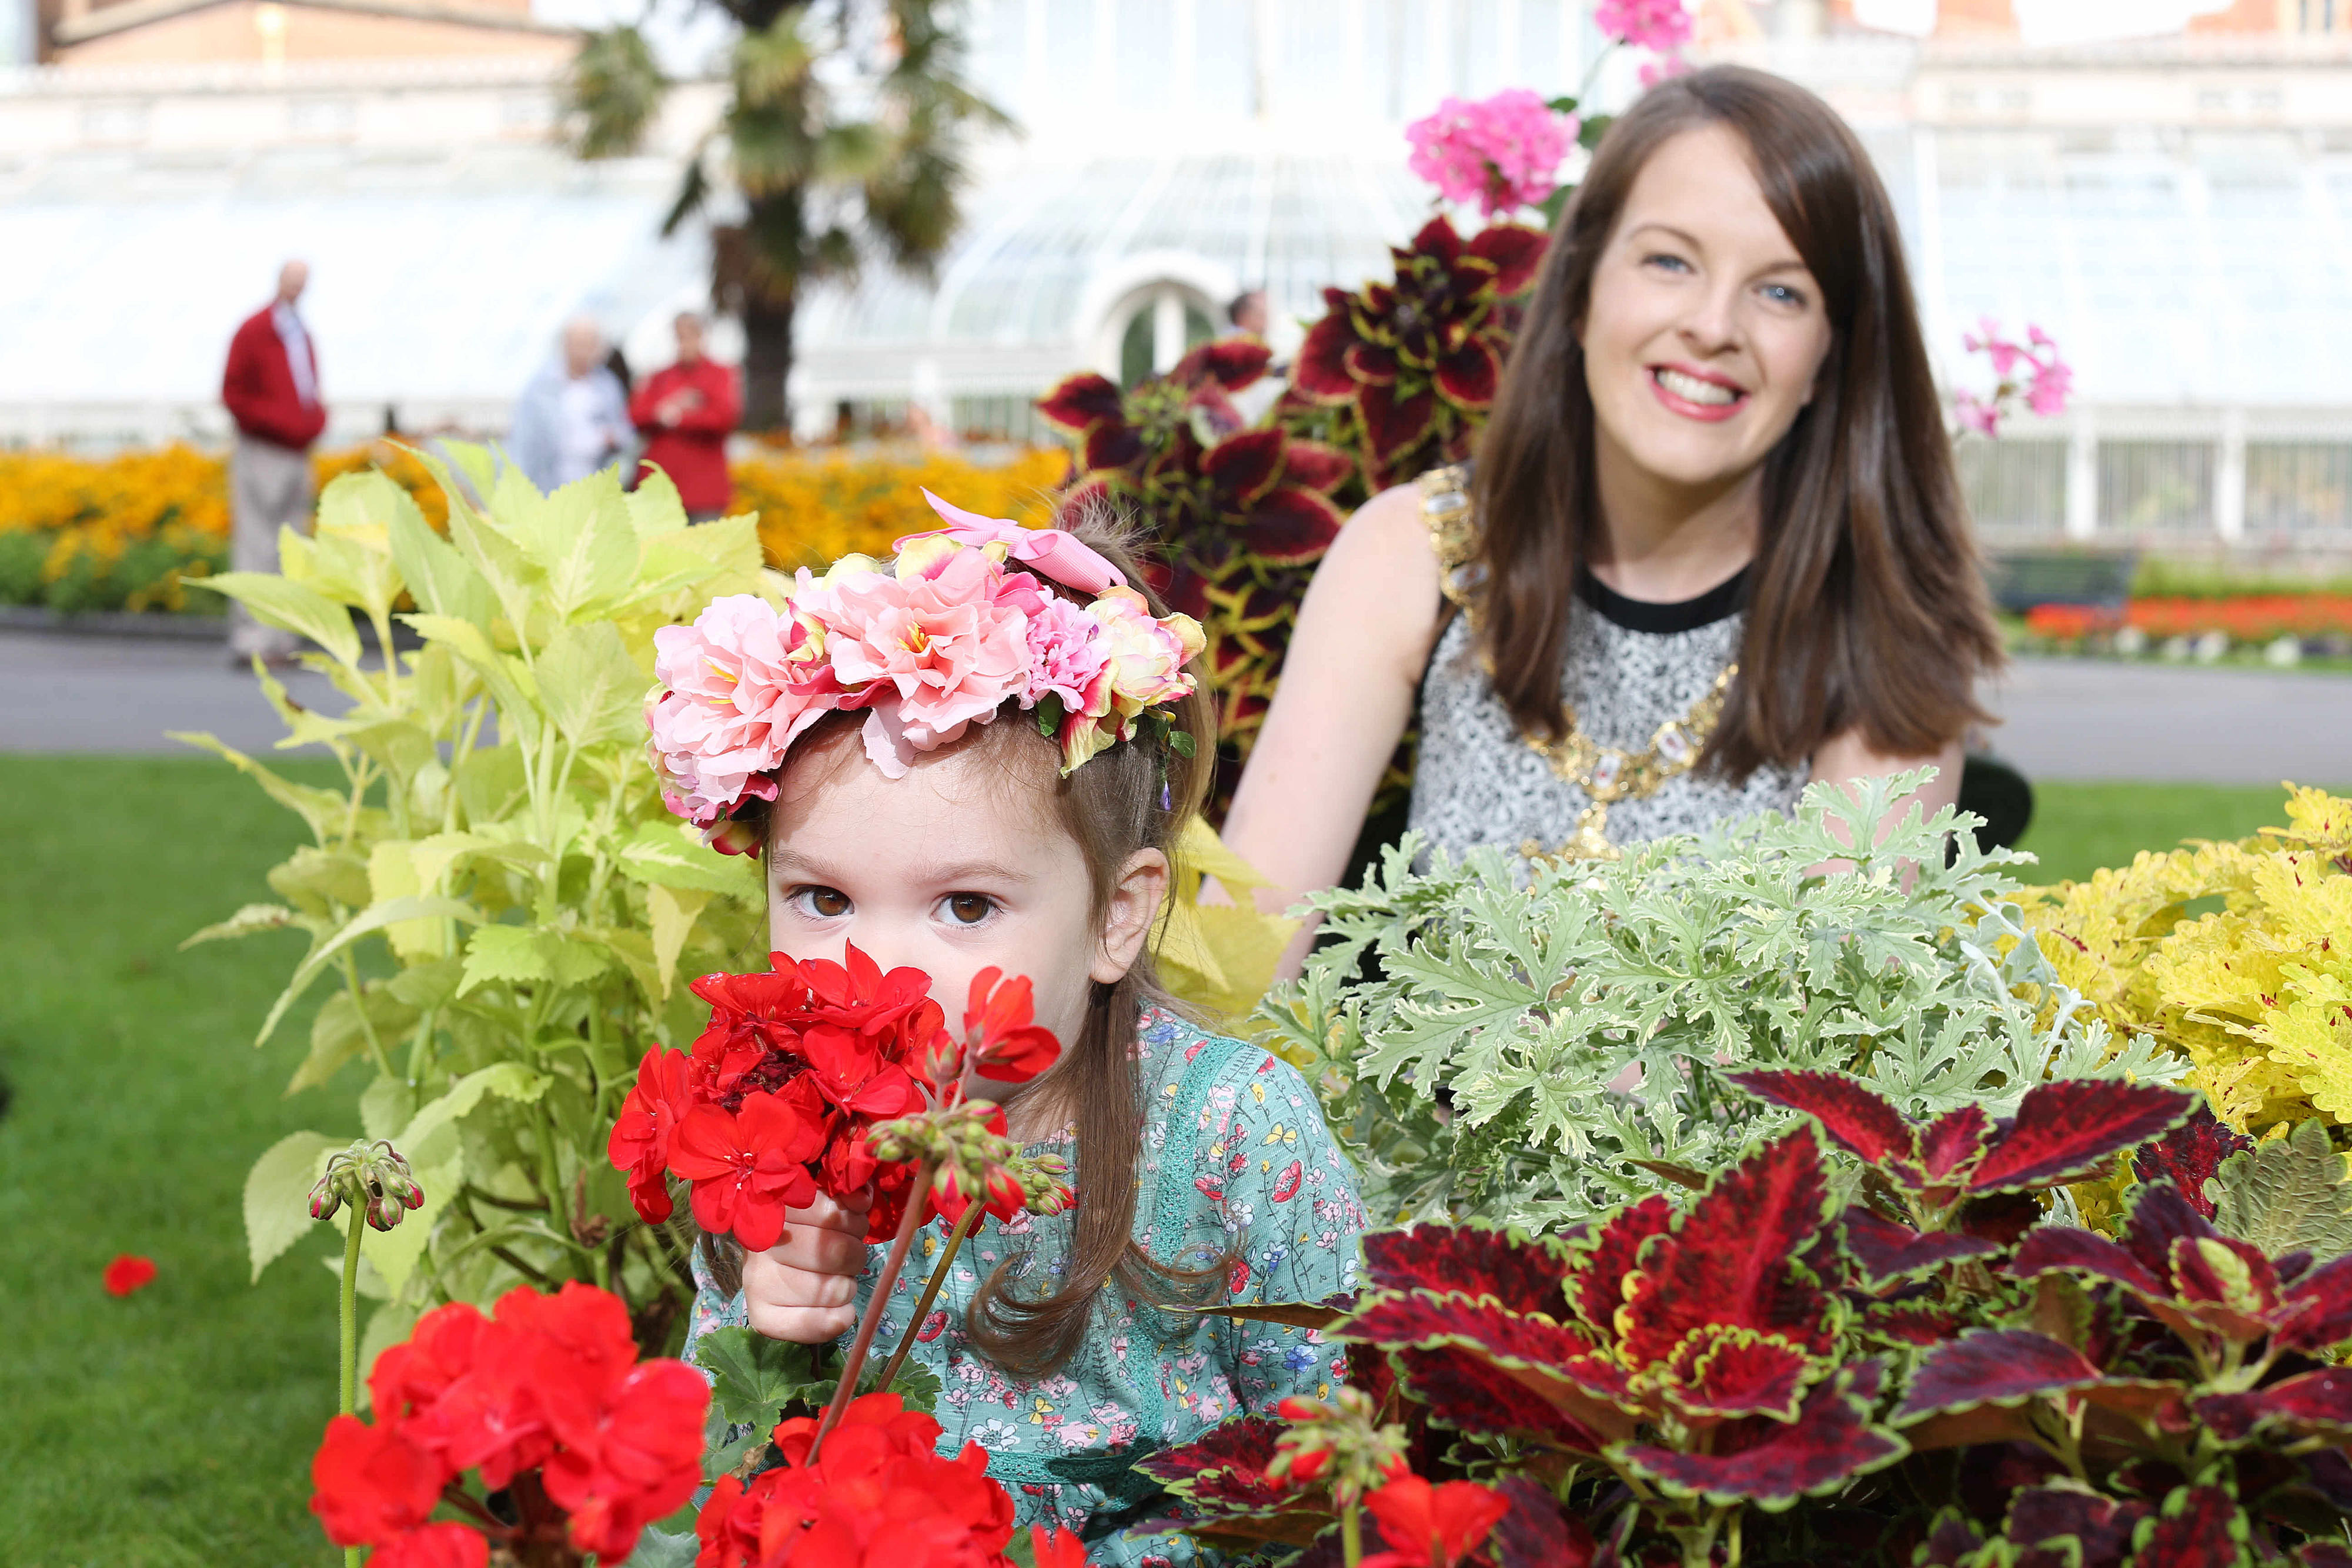 Autumn Fair Returns To Botanic Gardens This September